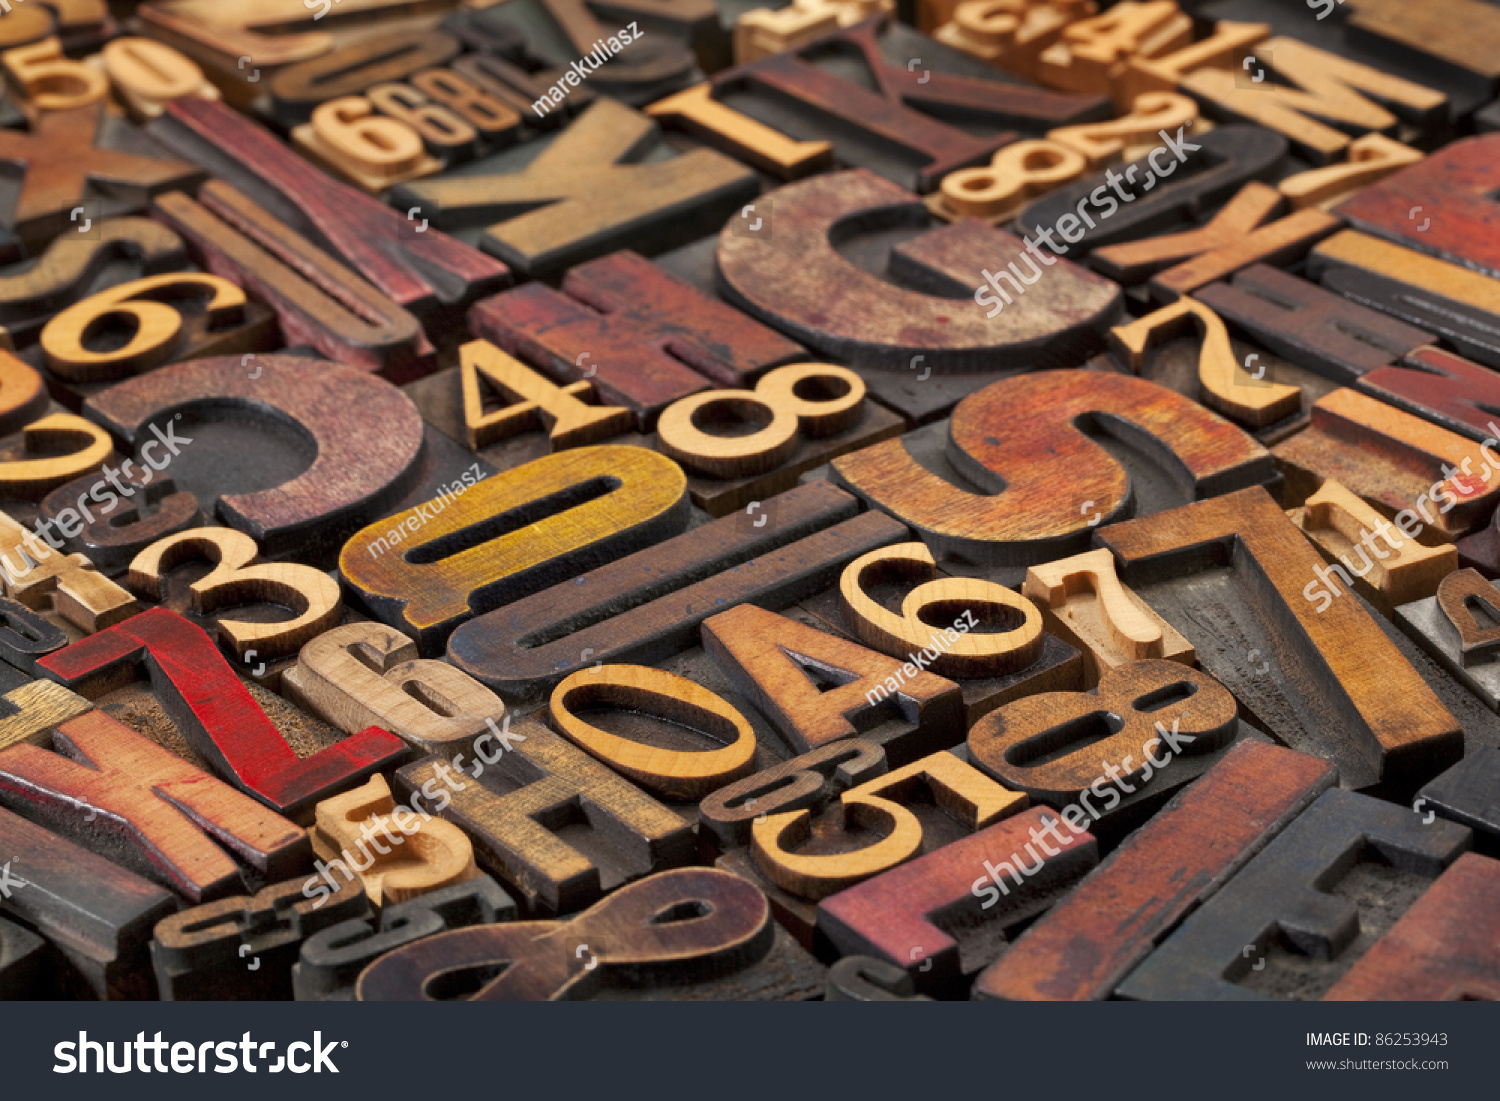 random letters and numbers in antique wood letterpress printing blocks of various size and style